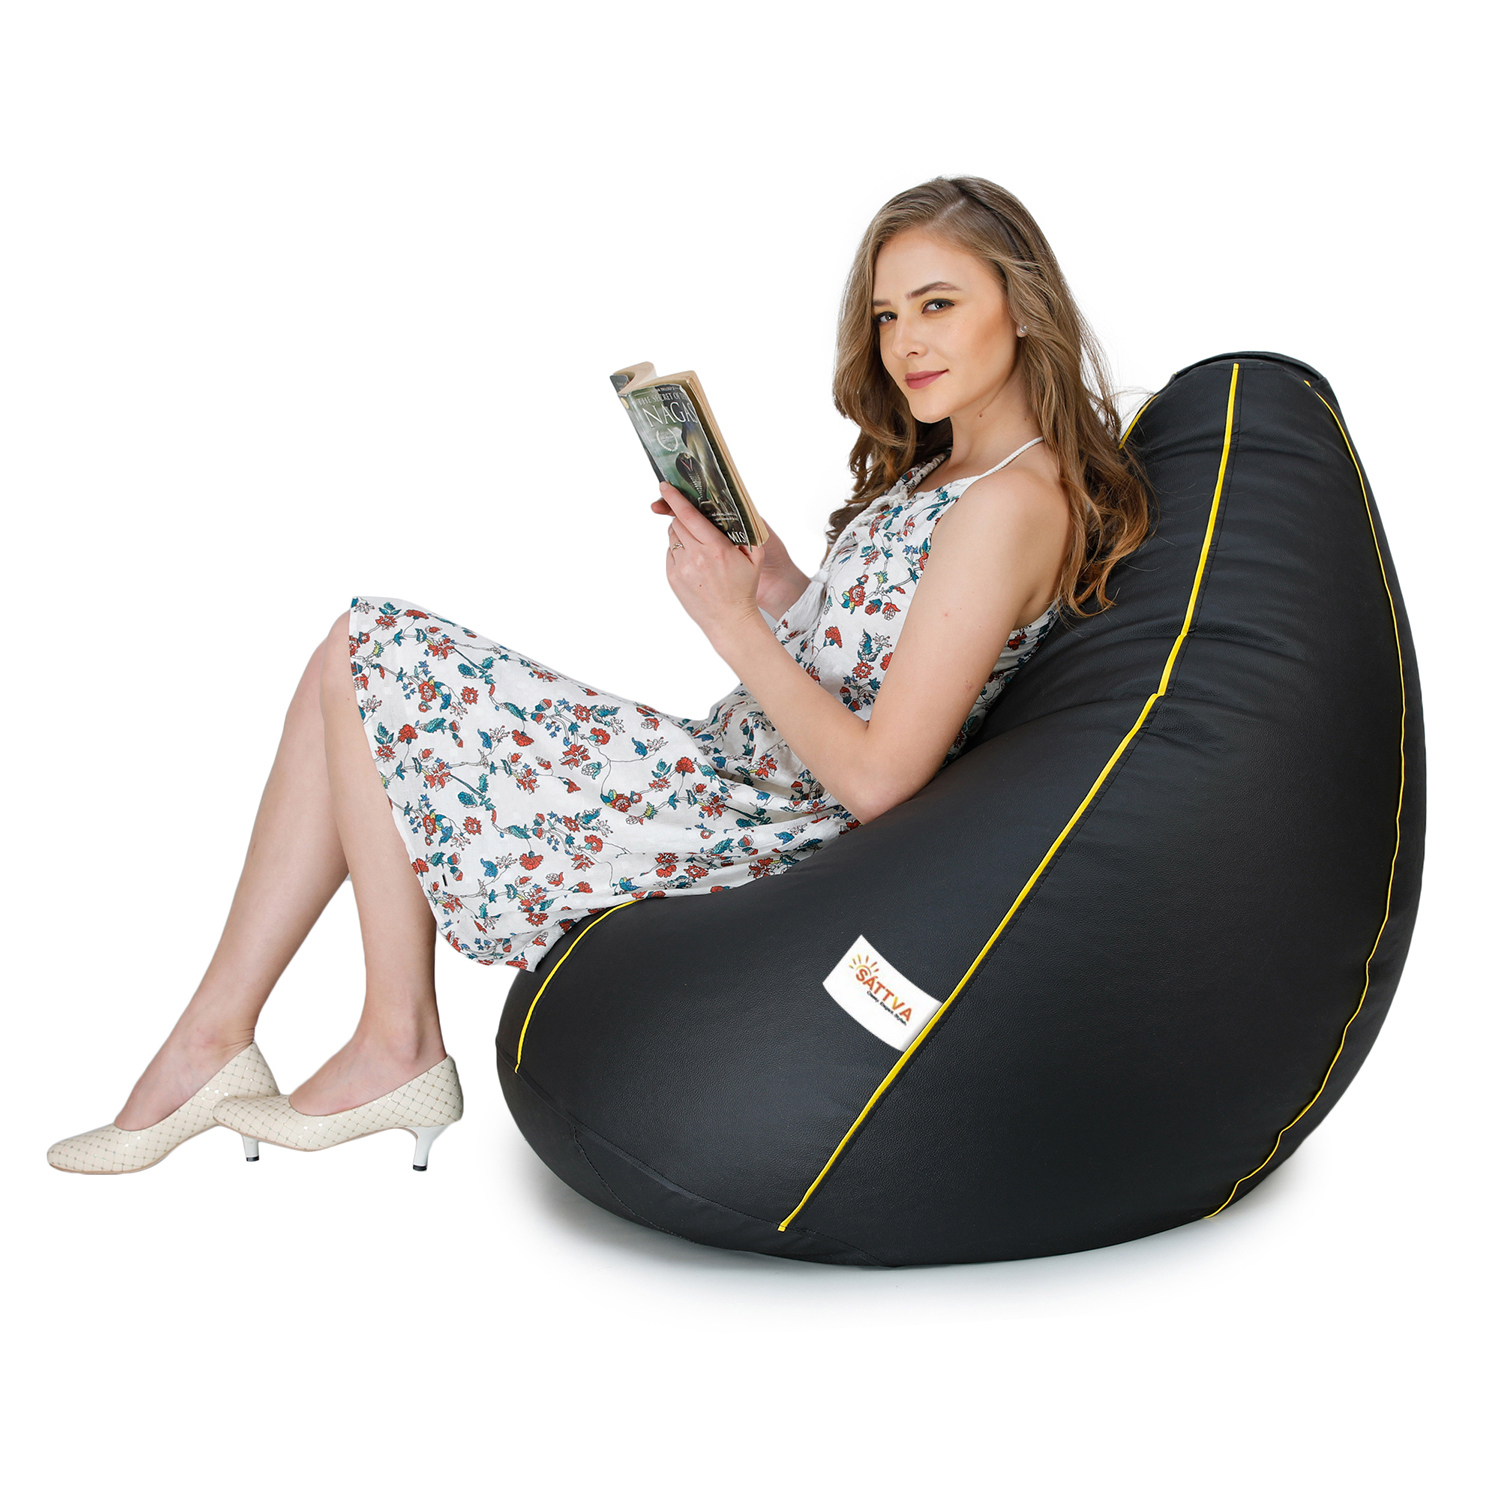 Sattva Classic XL Bean Bag Filled (with Beans) - Black With Yellow Piping